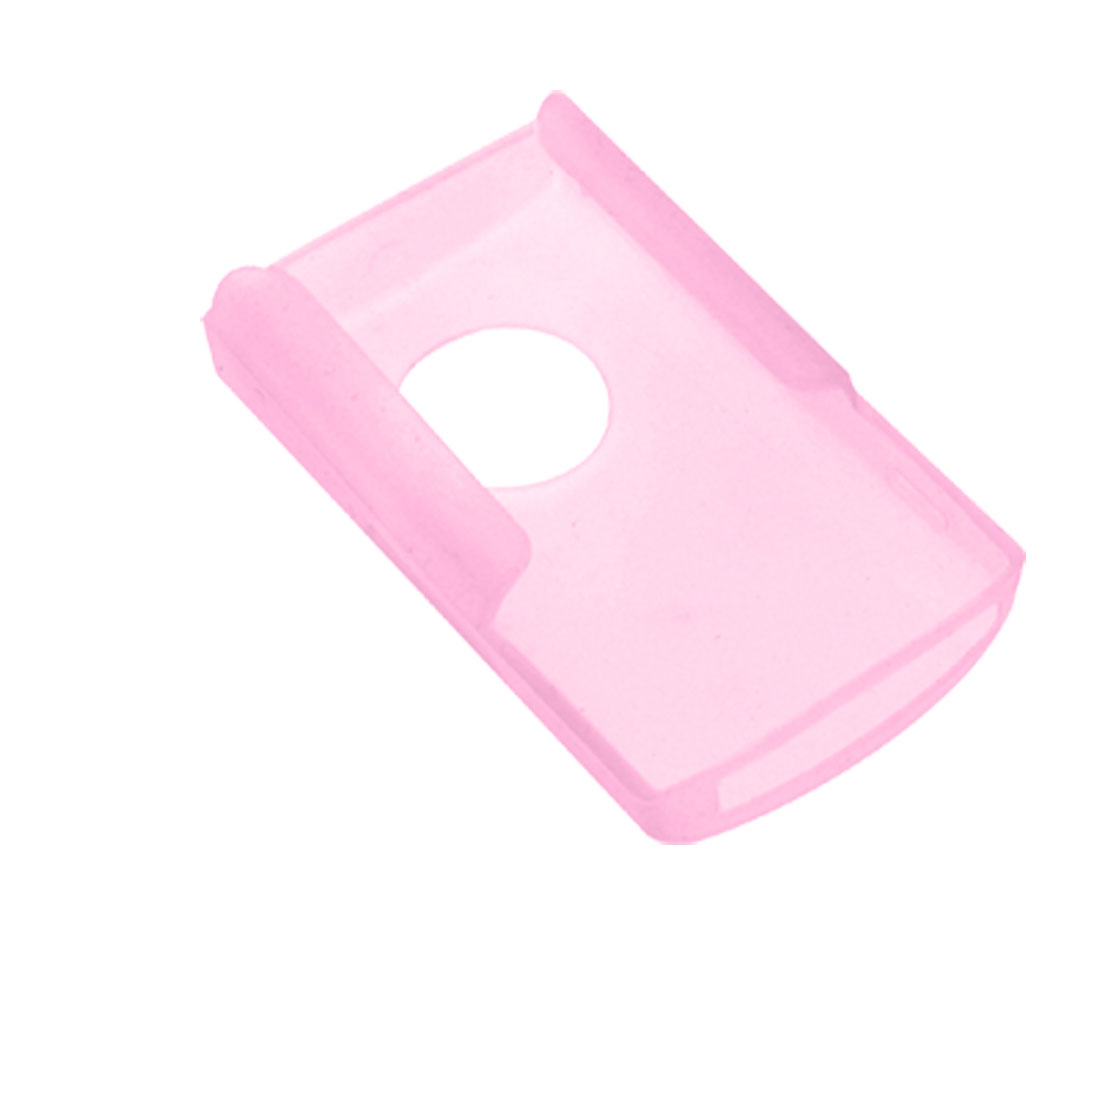 Silicone Skin Case for NOKIA N80 - Pink